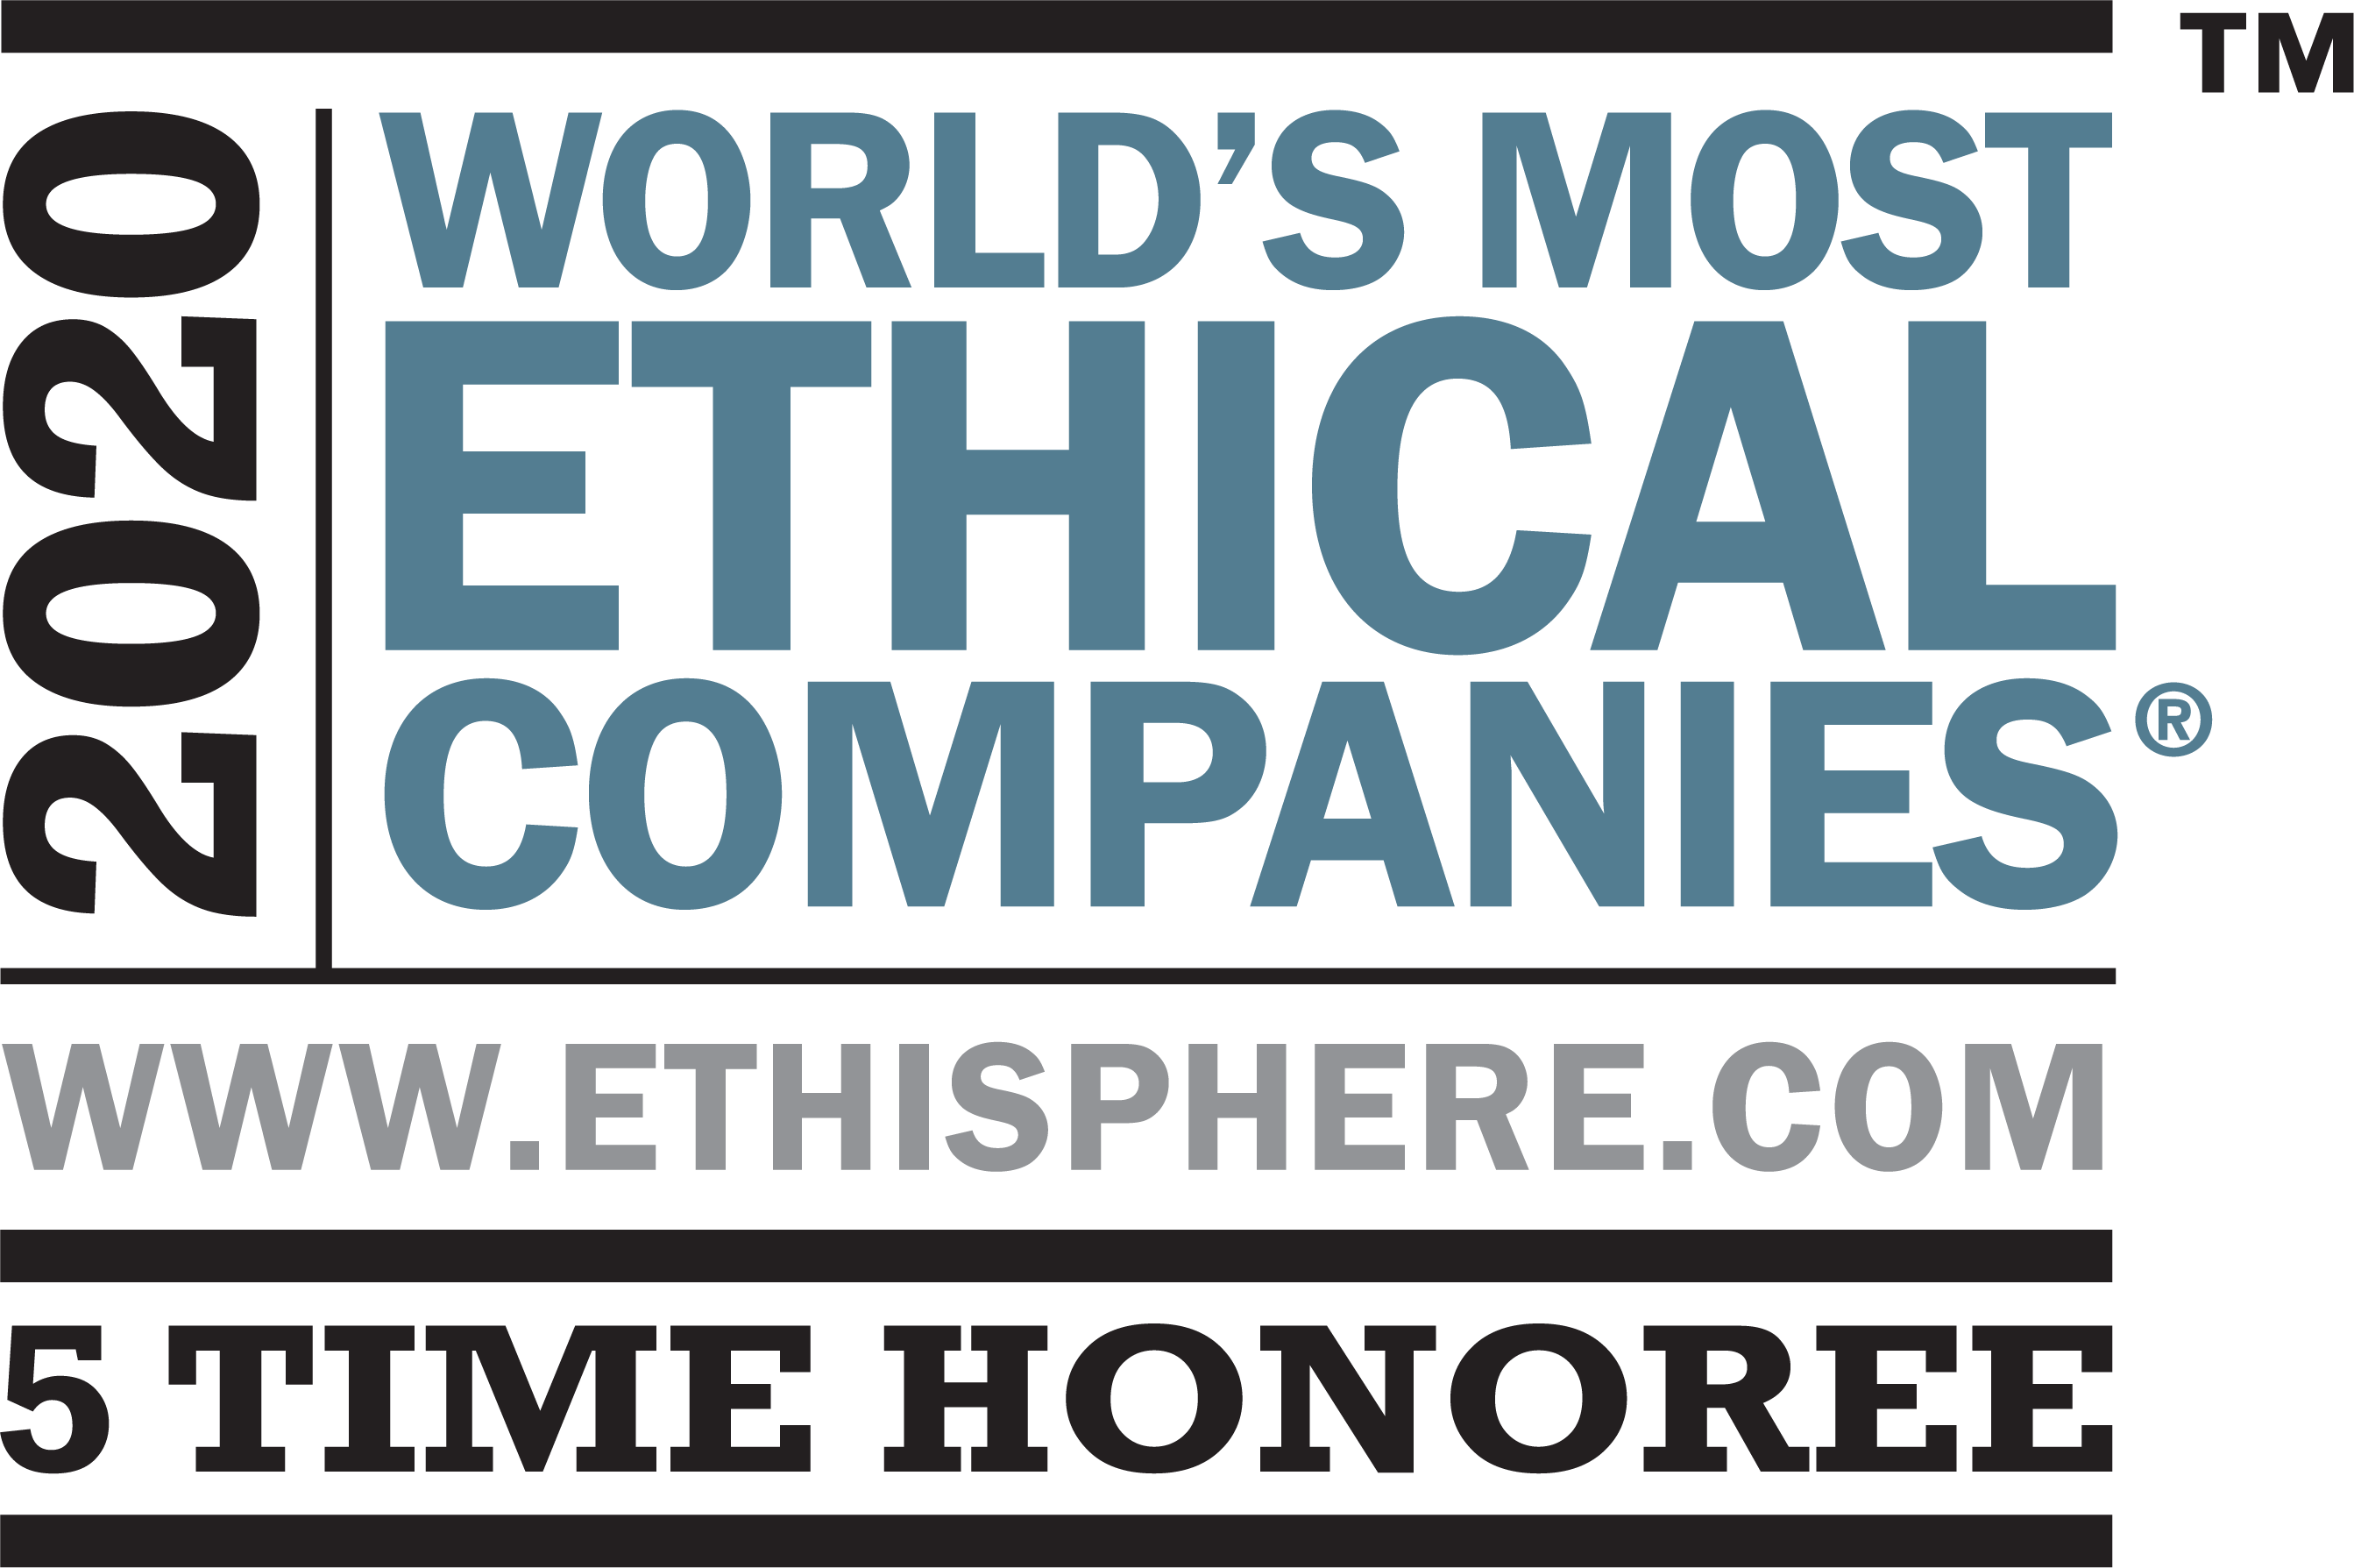 2020 World's Most Ethical Companies 5 Time Honoree